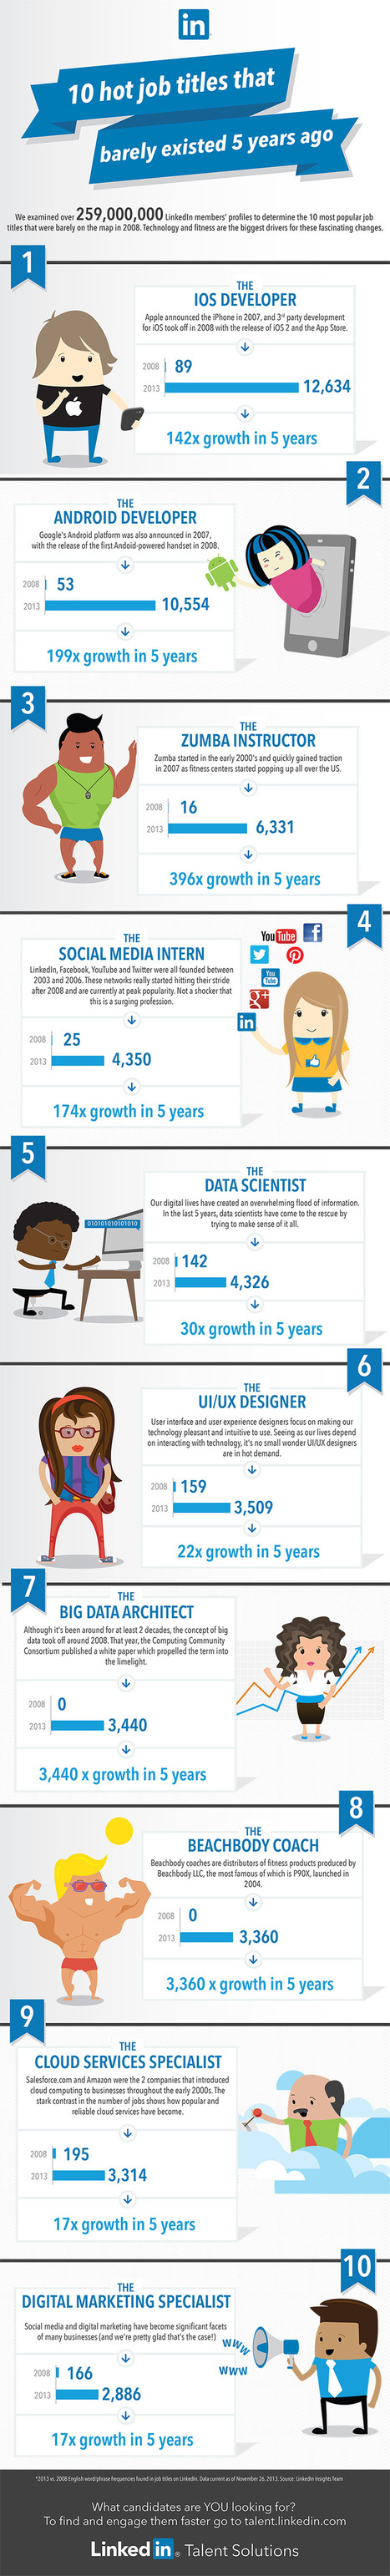 Top 10 Job Titles That Didn't Exist 5 Years Ago [INFOGRAPHIC] | Job Searching | Scoop.it